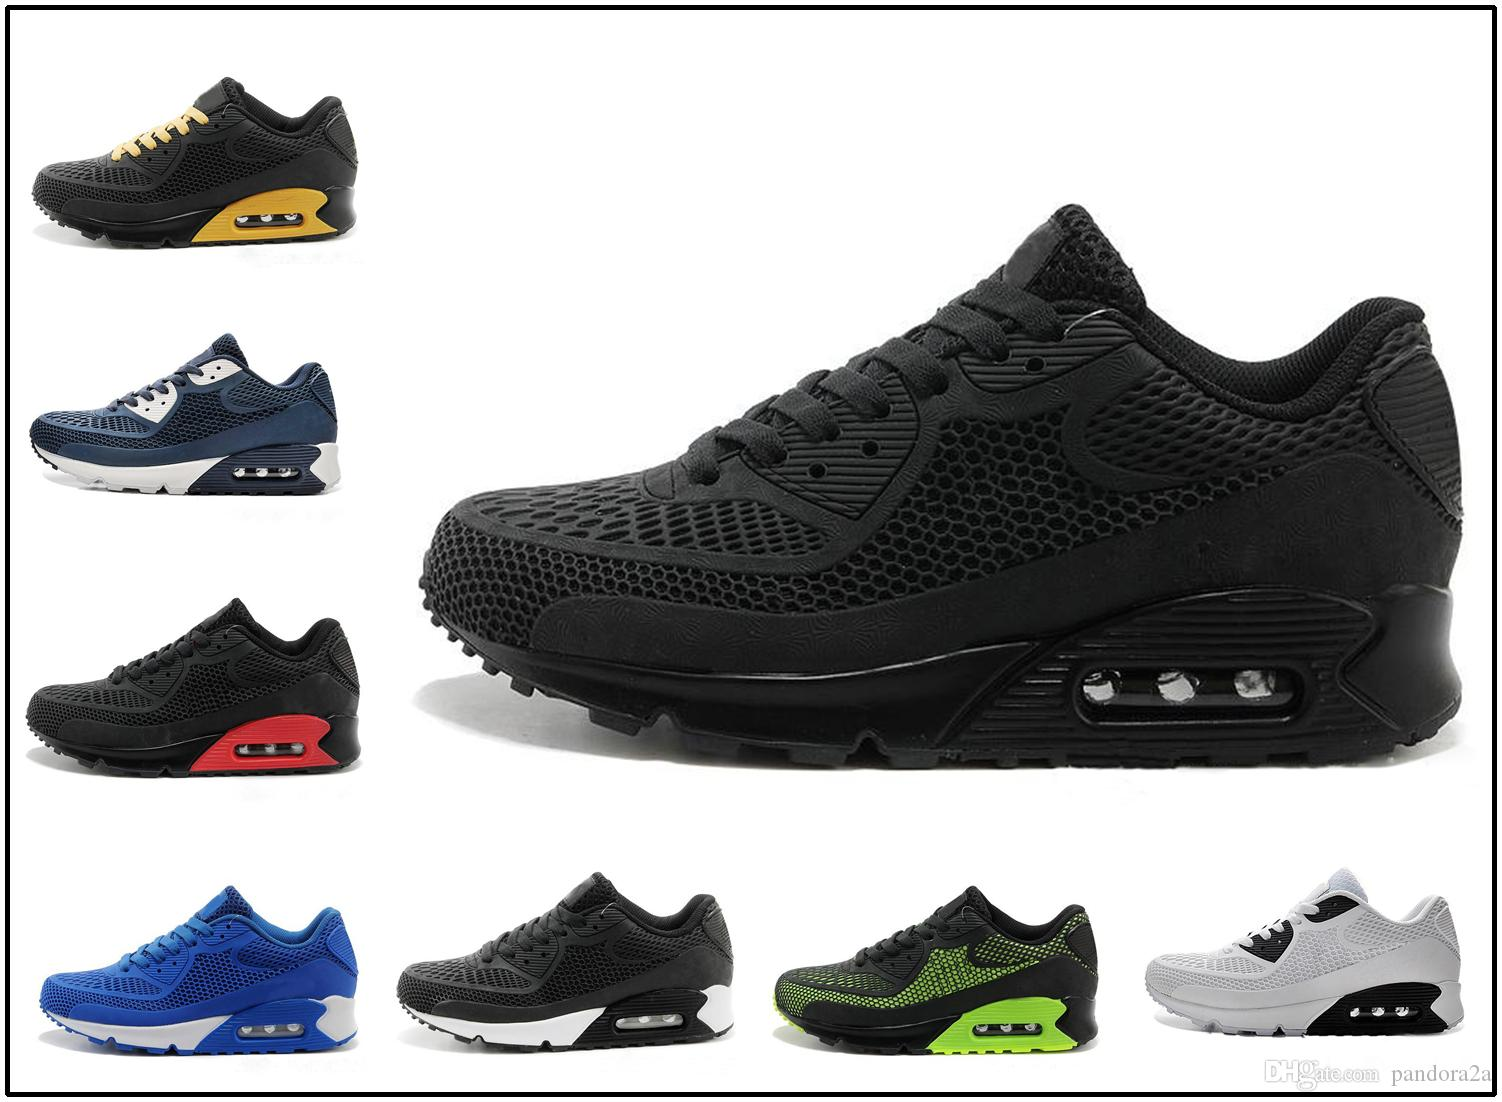 super popular 978ca bb5f8 Acquista Nike Air Max Airmax 90 Kpu 2018 Nuovo Running Shoes Cushion 90 KPU  Uomo Donna Sneakers Alta Qualità A Buon Mercato Tutto Nero Chaussure Homme  ...